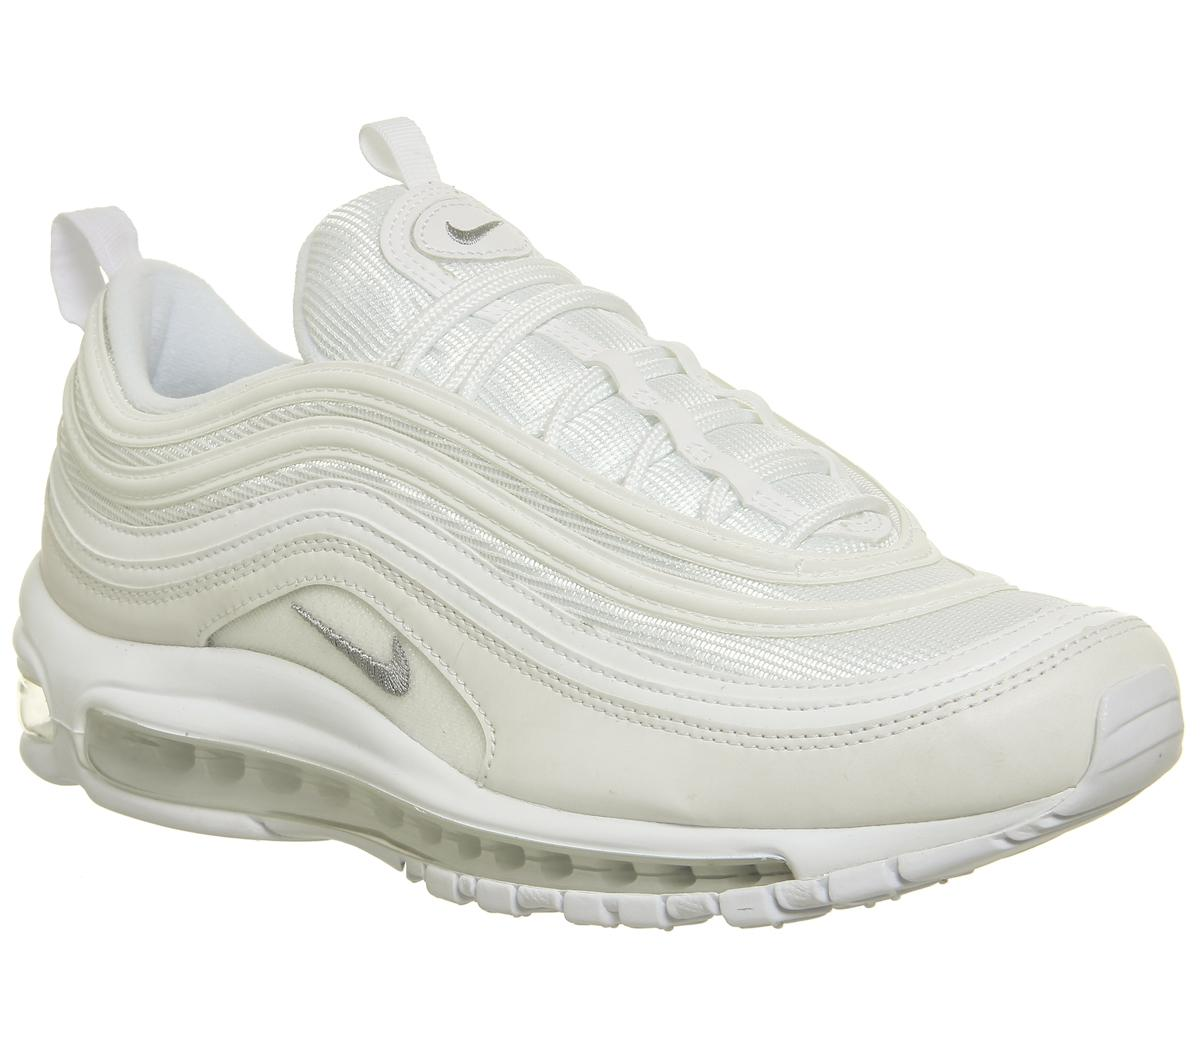 Nike The Ten Air Max 97 Off White Erscheinungsdatum